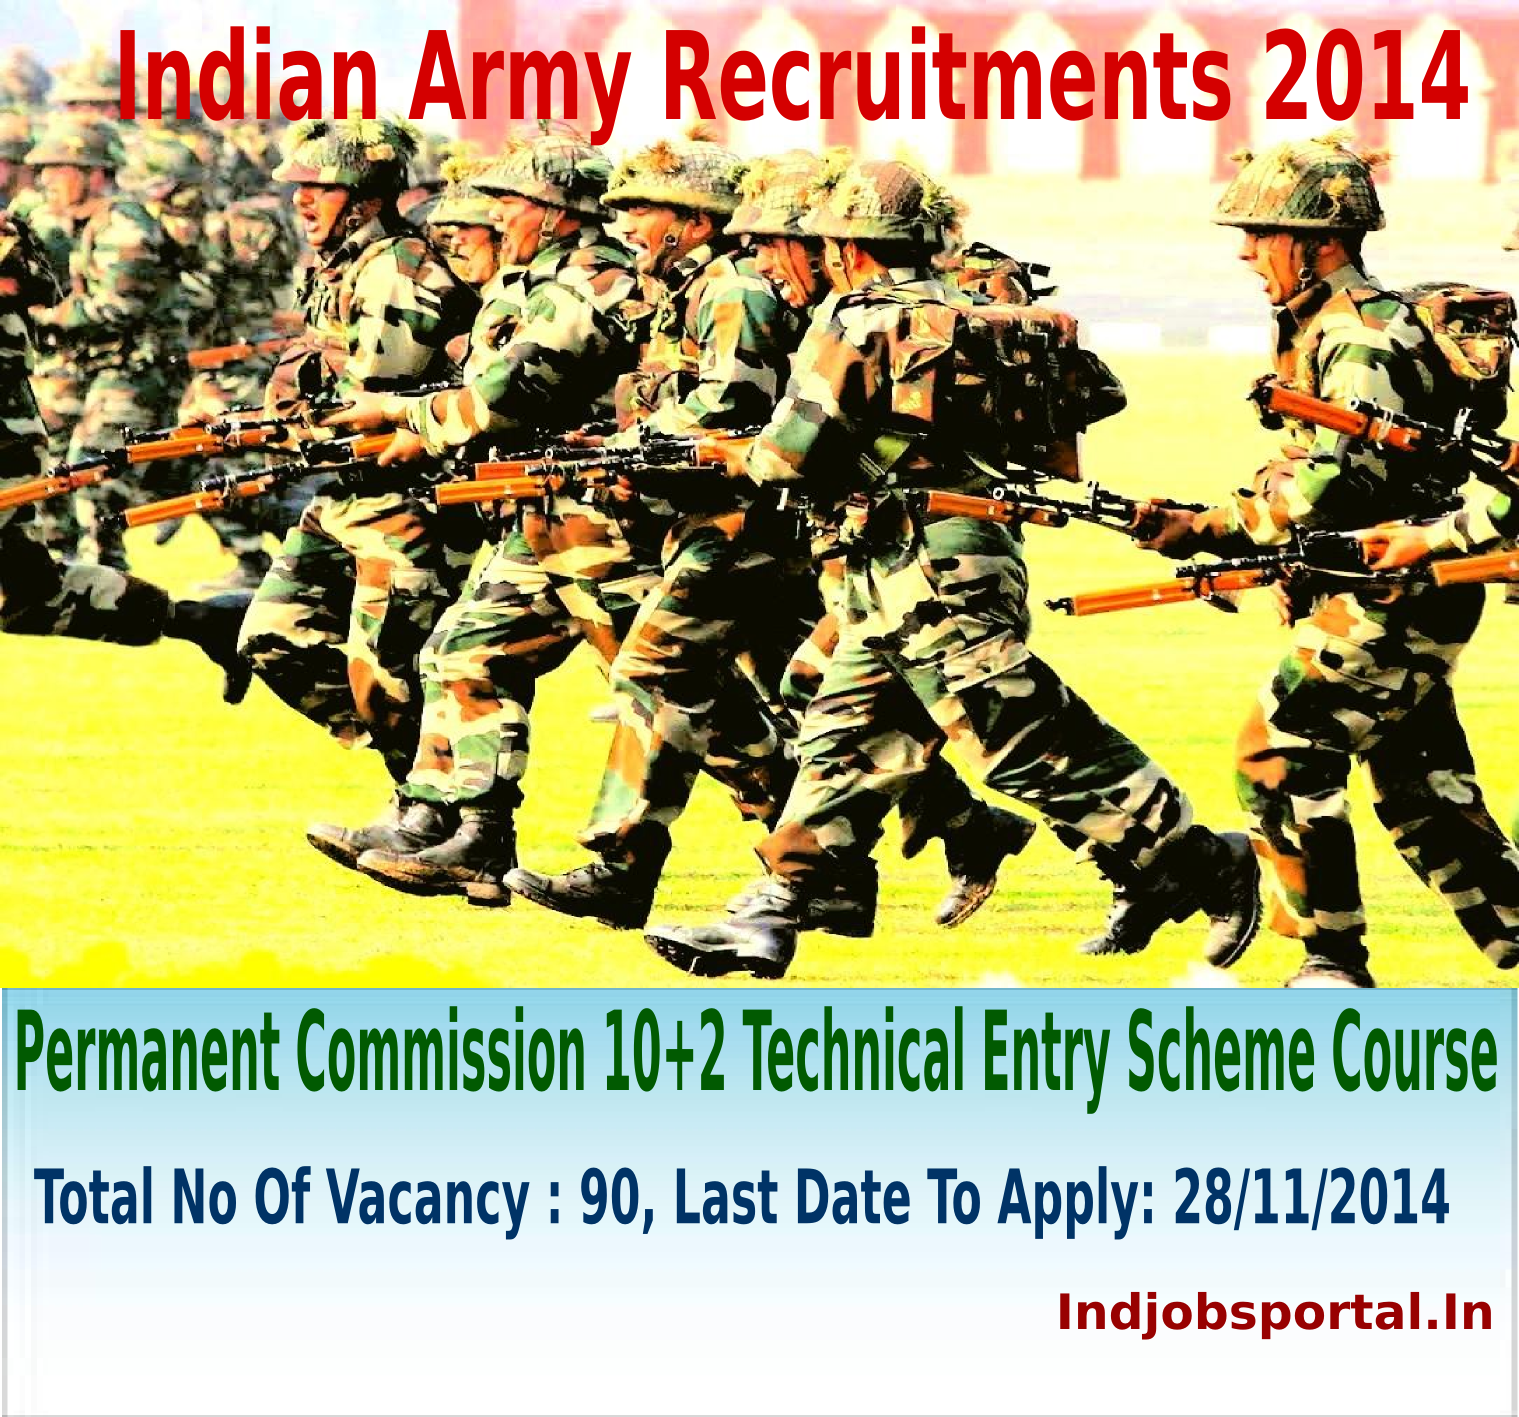 Indian Army Recruitment: Permanent Commission 10+2 Technical Entry Scheme Course